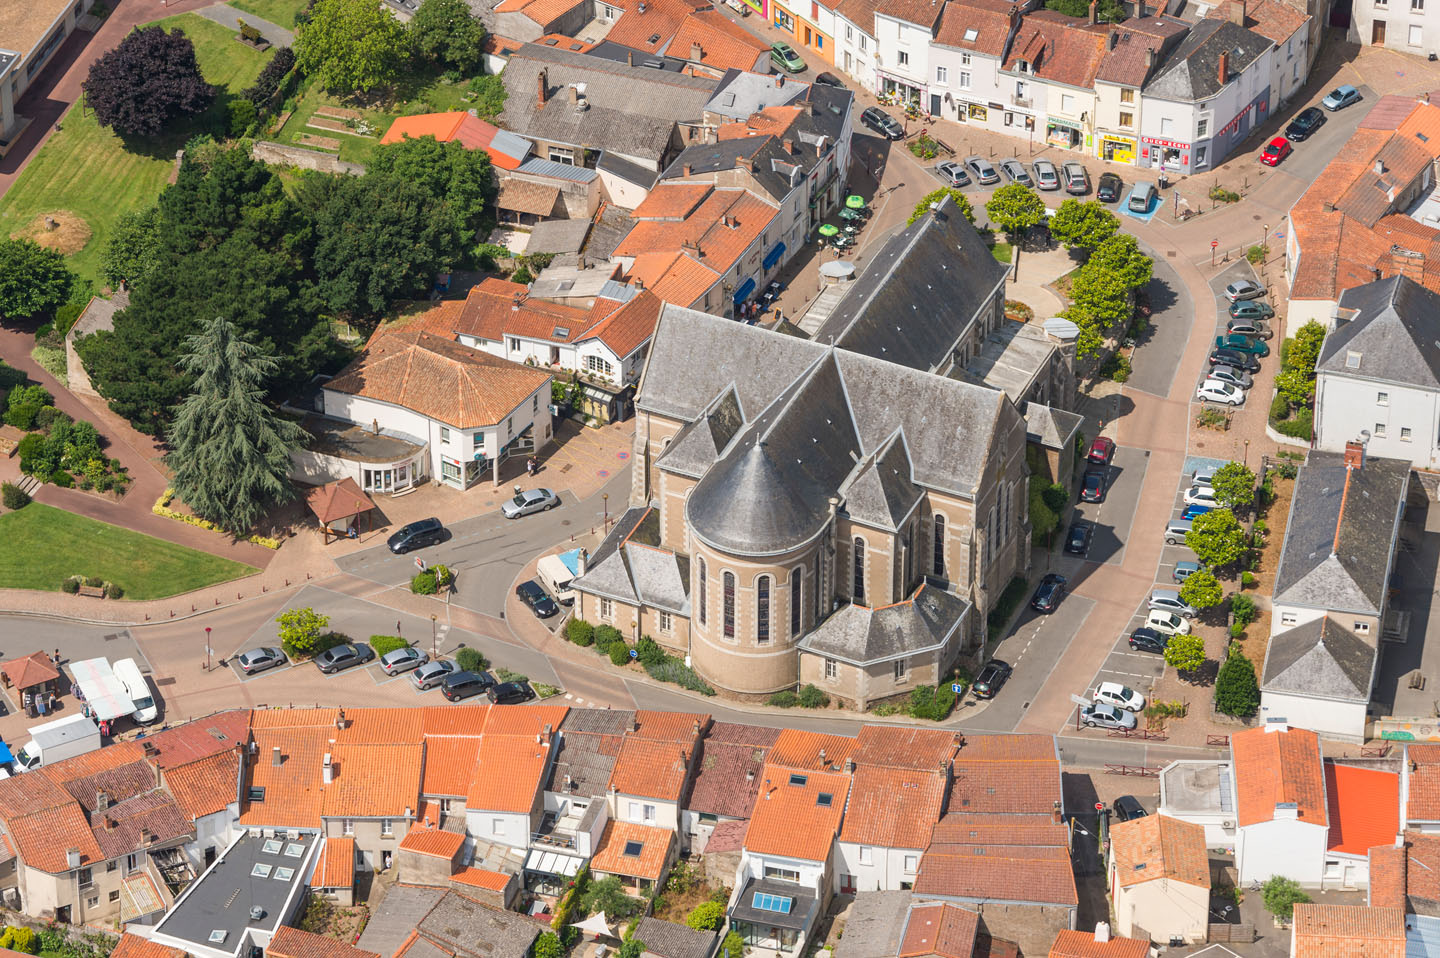 Photo aerienne de Saint Julien de Concelles,commune ligerienne de Loire-Atlantique